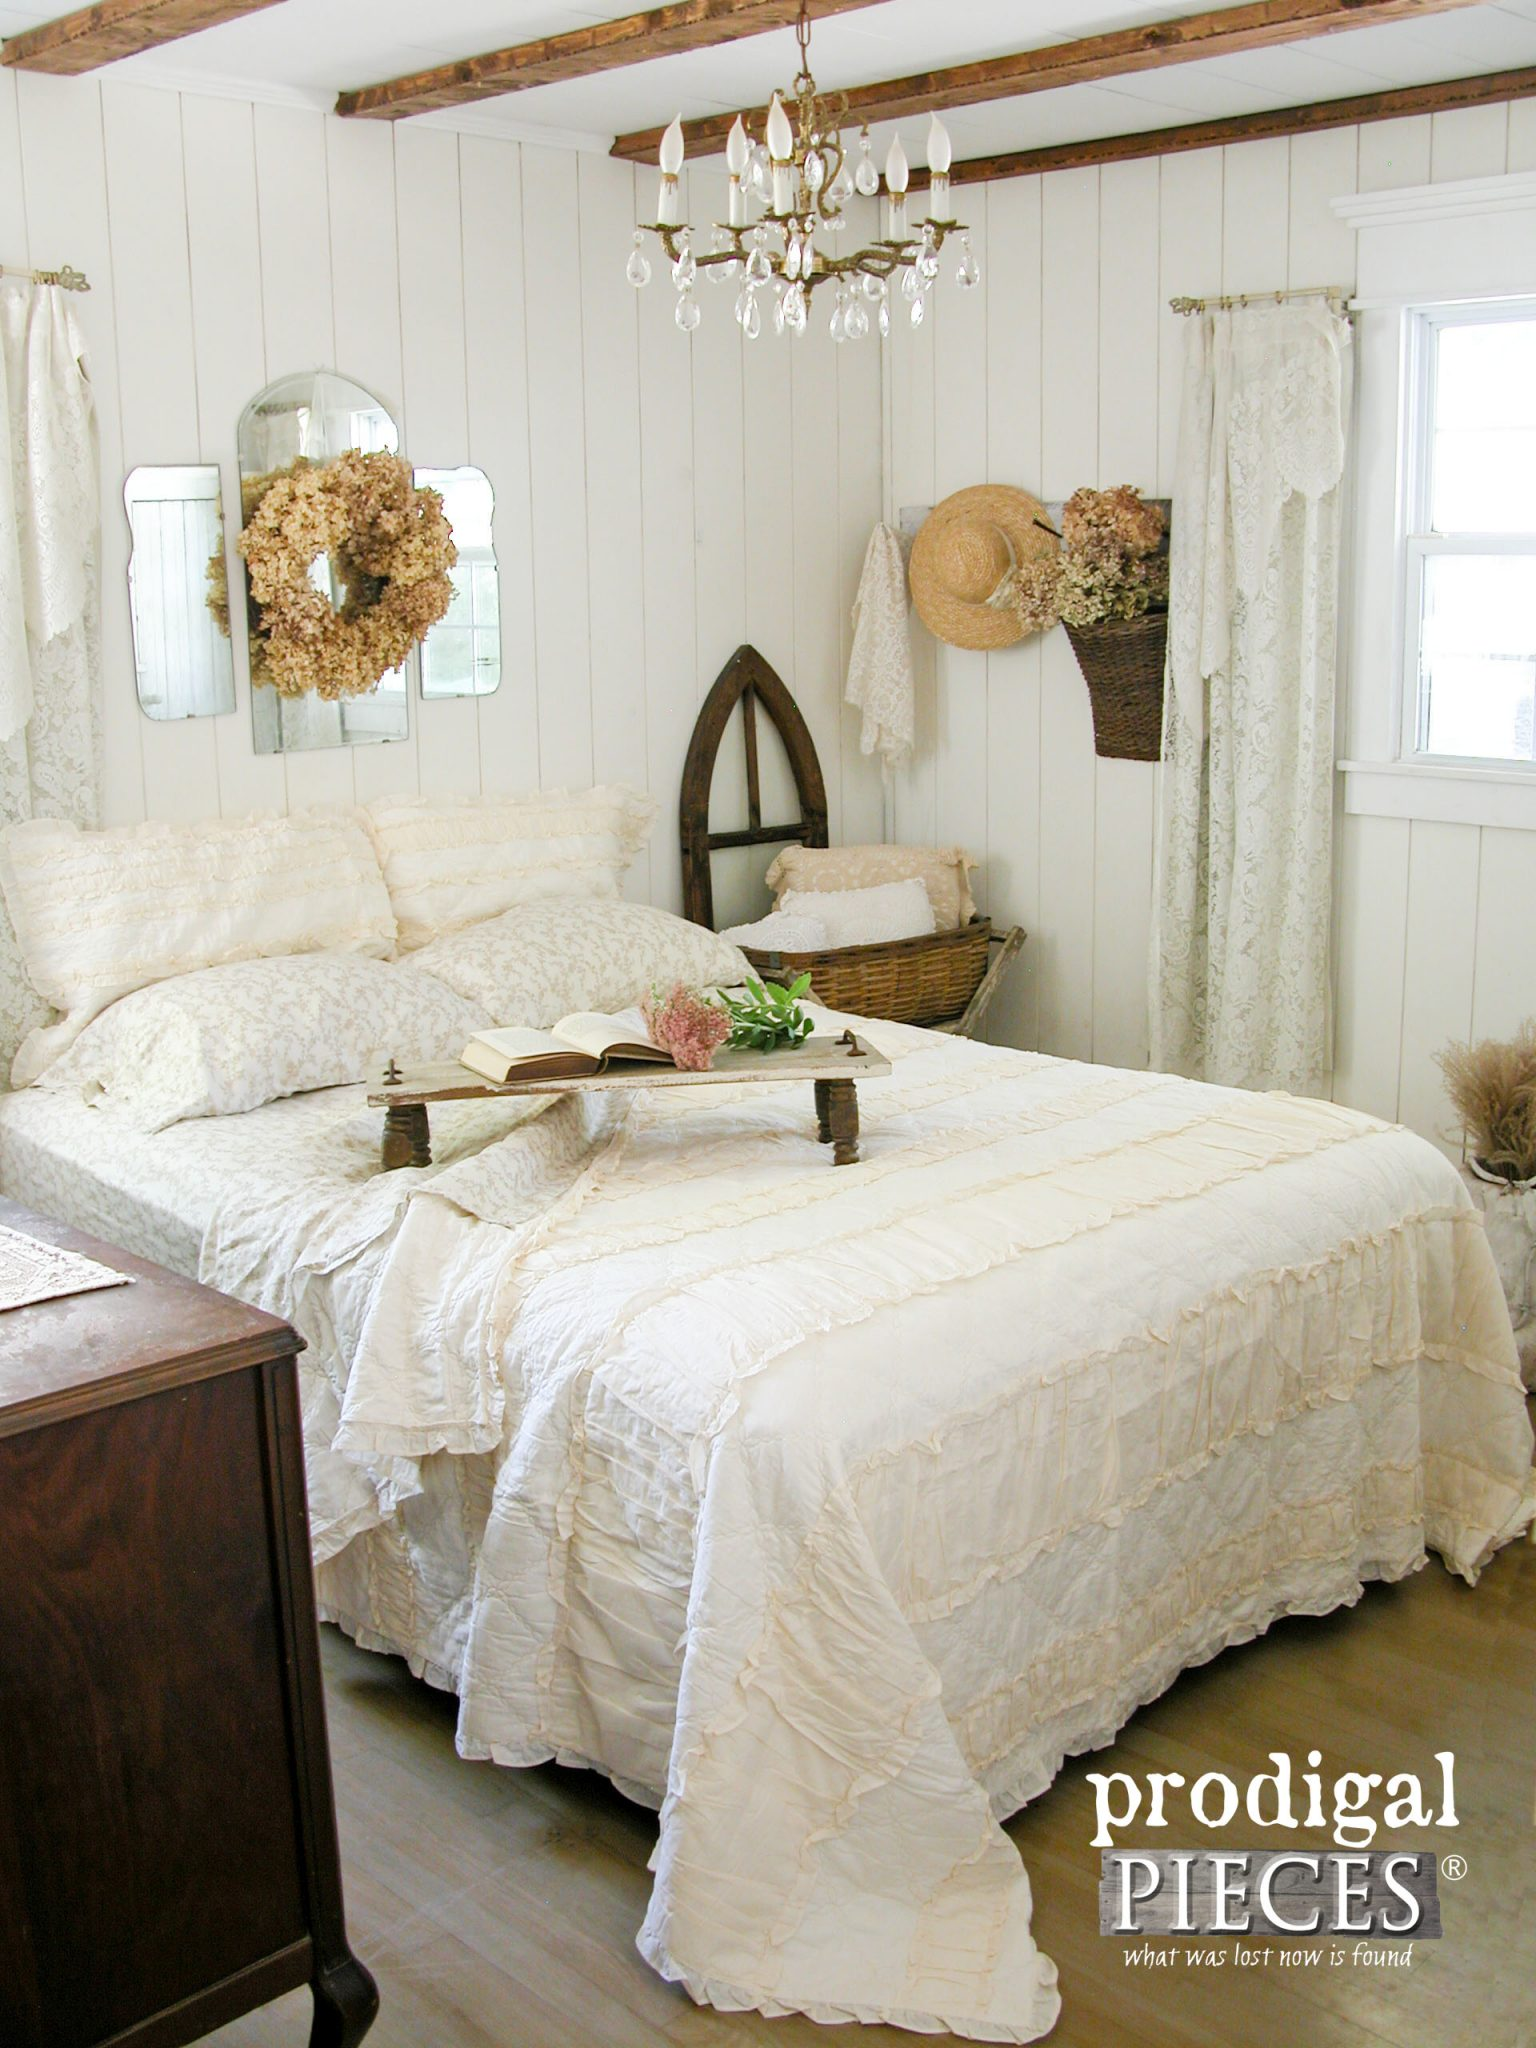 Farmhouse Style Master Bedroom Makeover with Reclaimed and Repurposed Sources by Prodigal Pieces | prodigalpieces.com